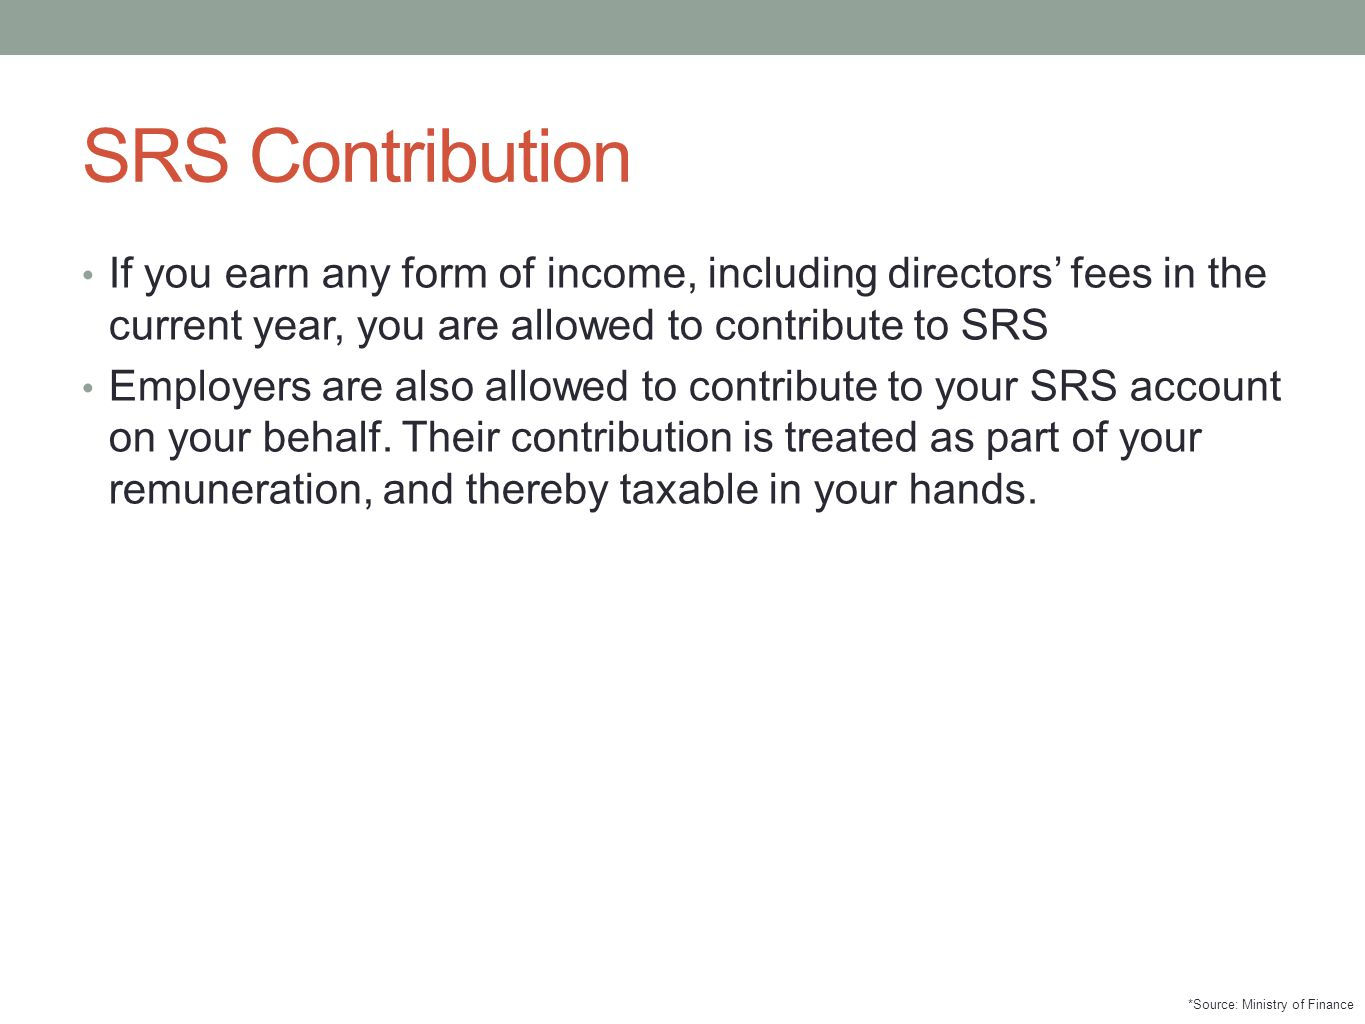 SRS Contribution If you earn any form of income, including directors' fees in the current year, you are allowed to contribute to SRS.